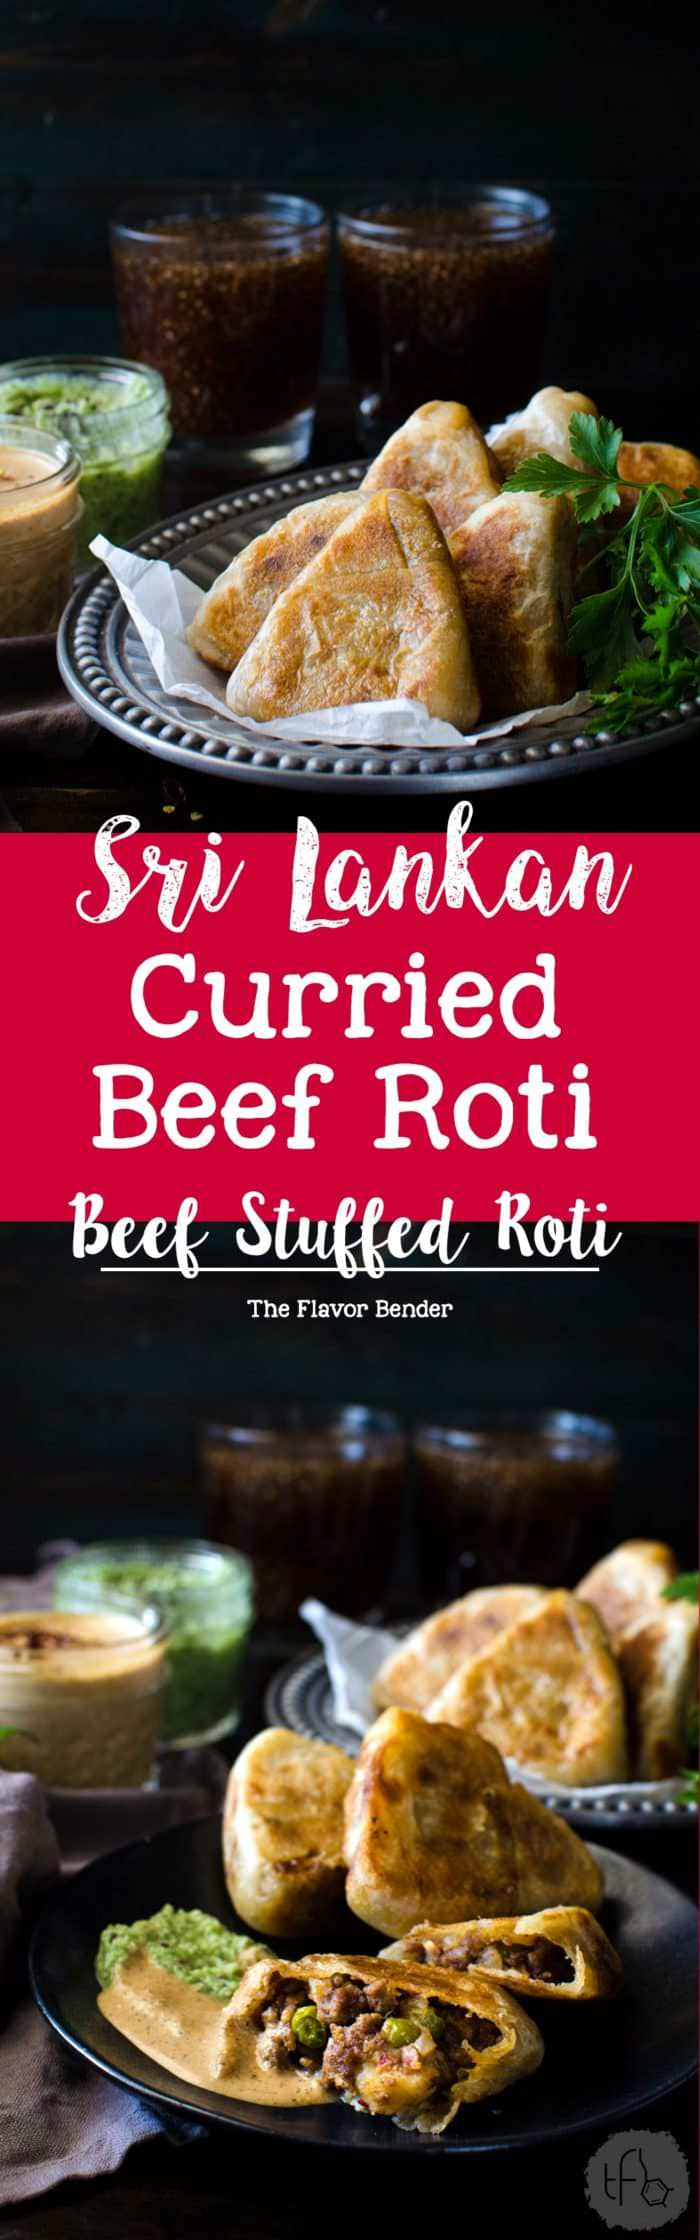 Curried Beef Roti - Now you can make snack sized Beef Stuffed Godhamba roti, a popular Sri Lankan snack, right at home. Spiced ground beef, wrapped in a thin soft roti and the perfect appetizer or party snack!